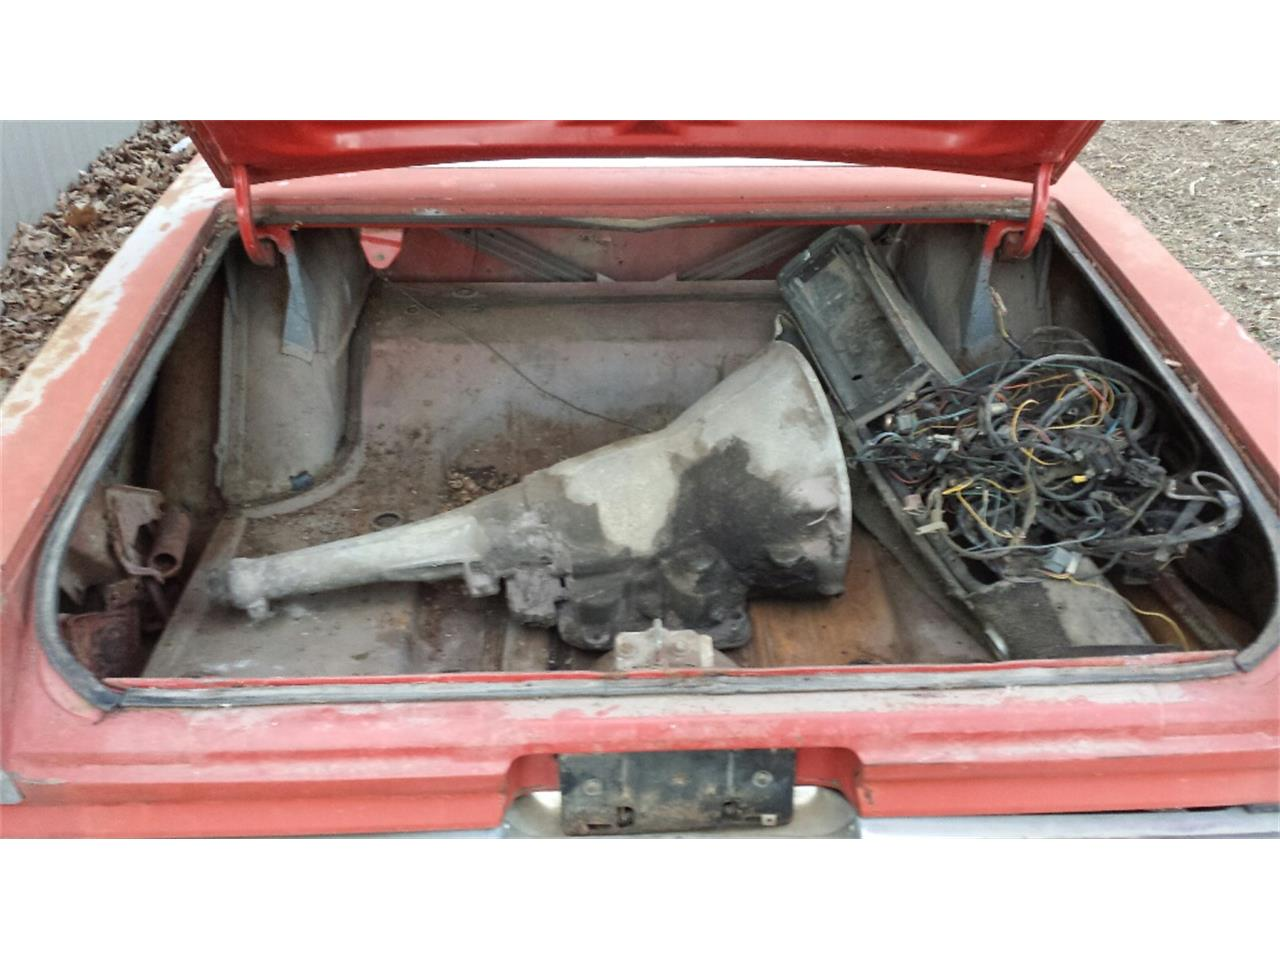 Large Picture of '65 Dodge Coronet 500 - $5,000.00 Offered by a Private Seller - LD9Z